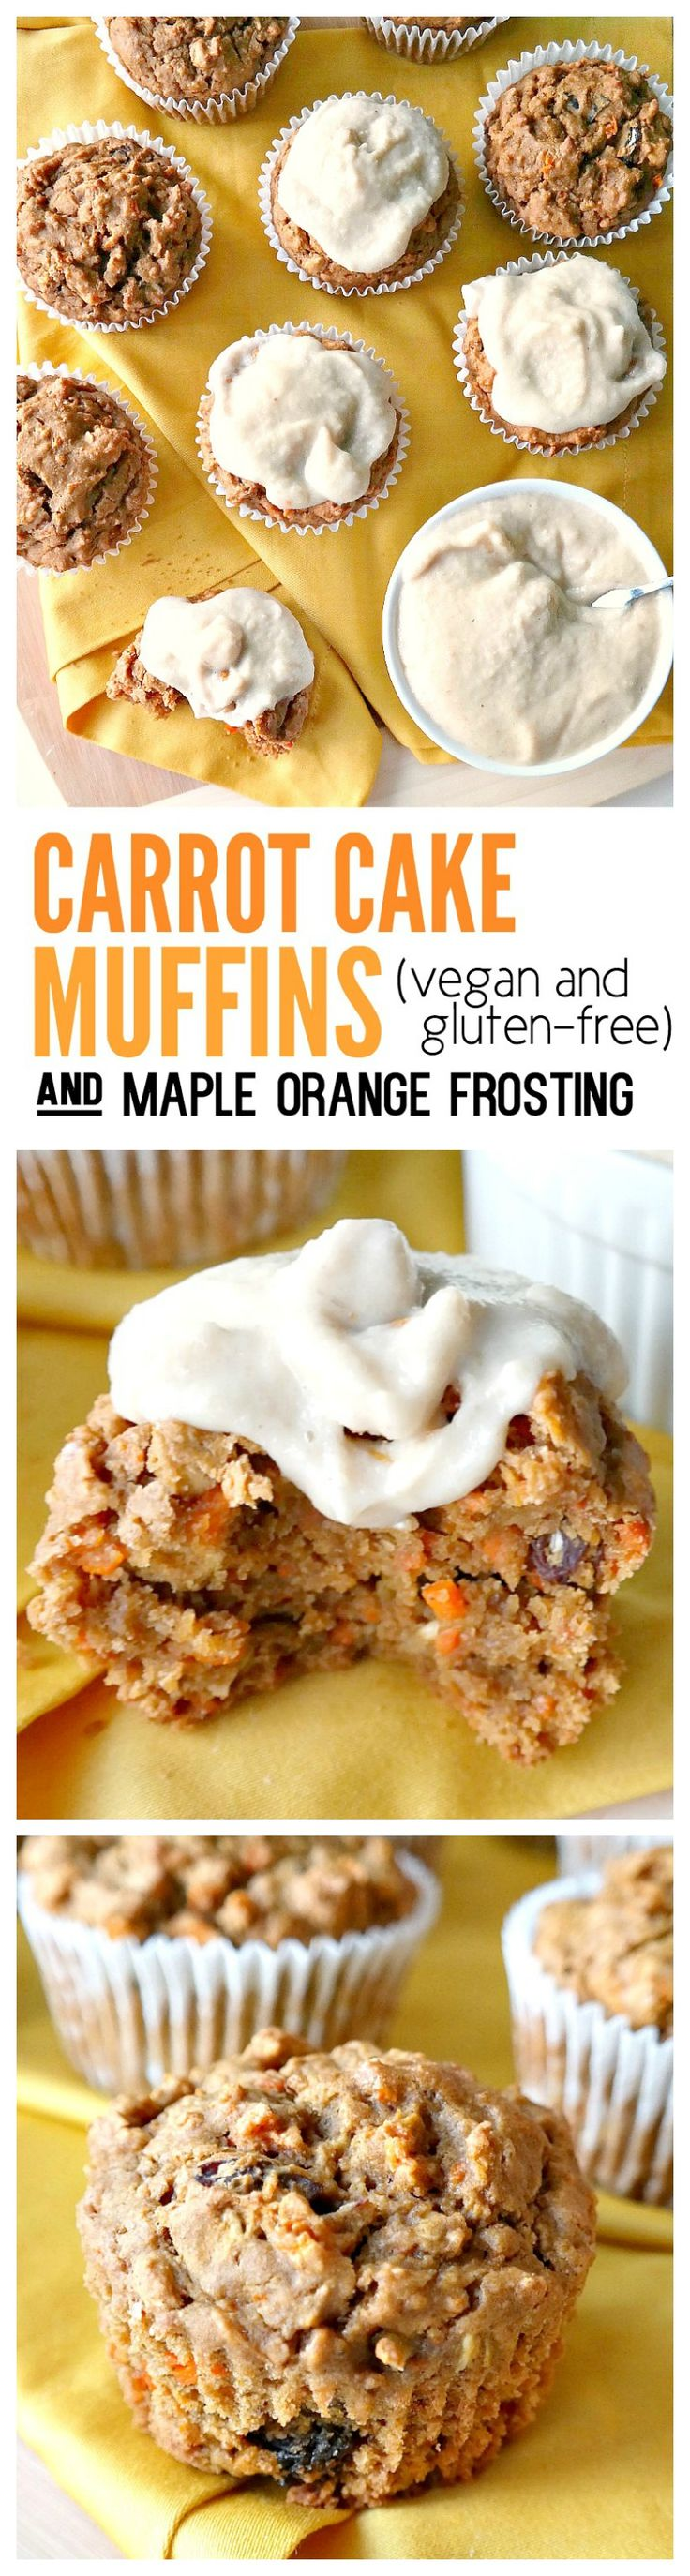 Vegan & Gluten-Free. Fluffy, not dry! Made with oat flour, warming spices, grated carrot, raisins and applesauce for a wholesome on-the-go snack or quick breakfast. Slather with creamy orange-infused maple cashew frosting and turn it into a treat! #carrot